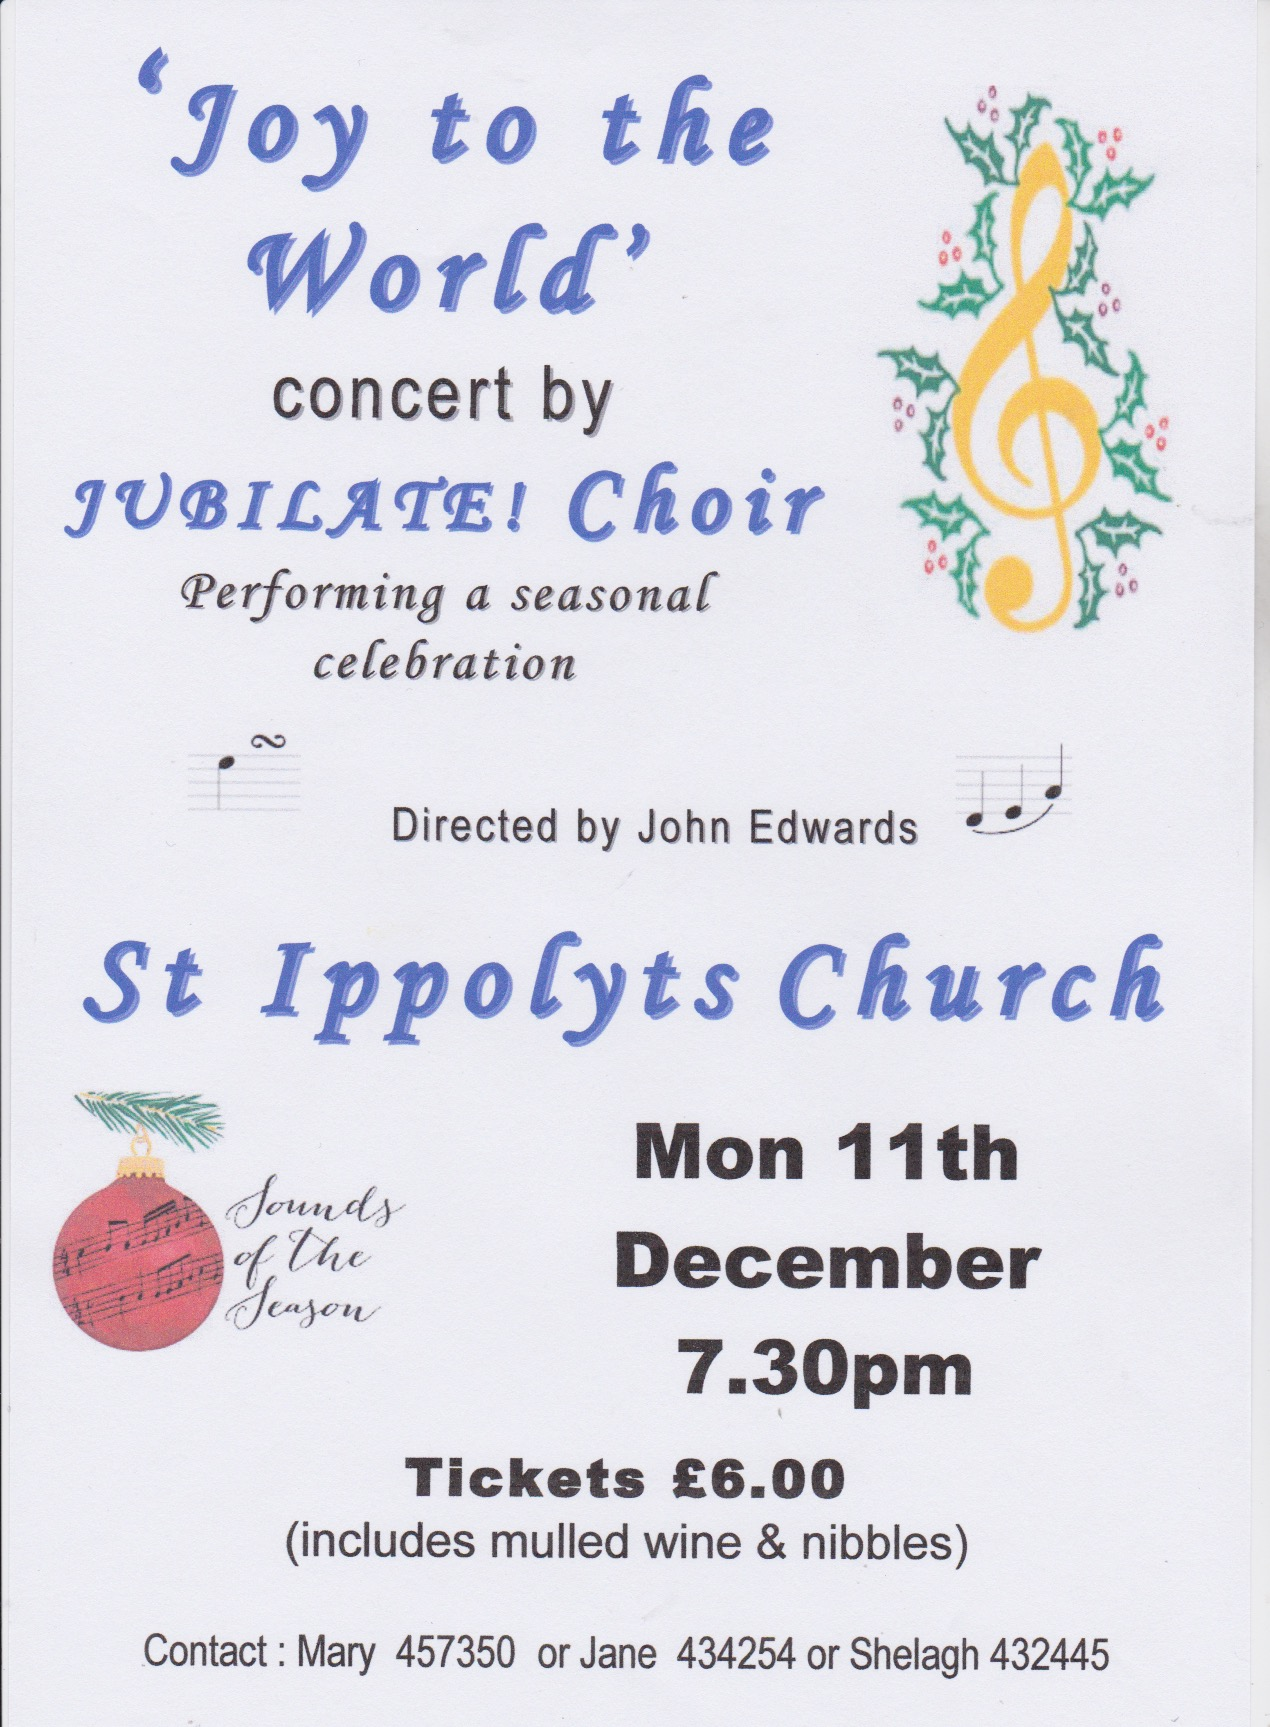 171211 Jubilate Choir Concert